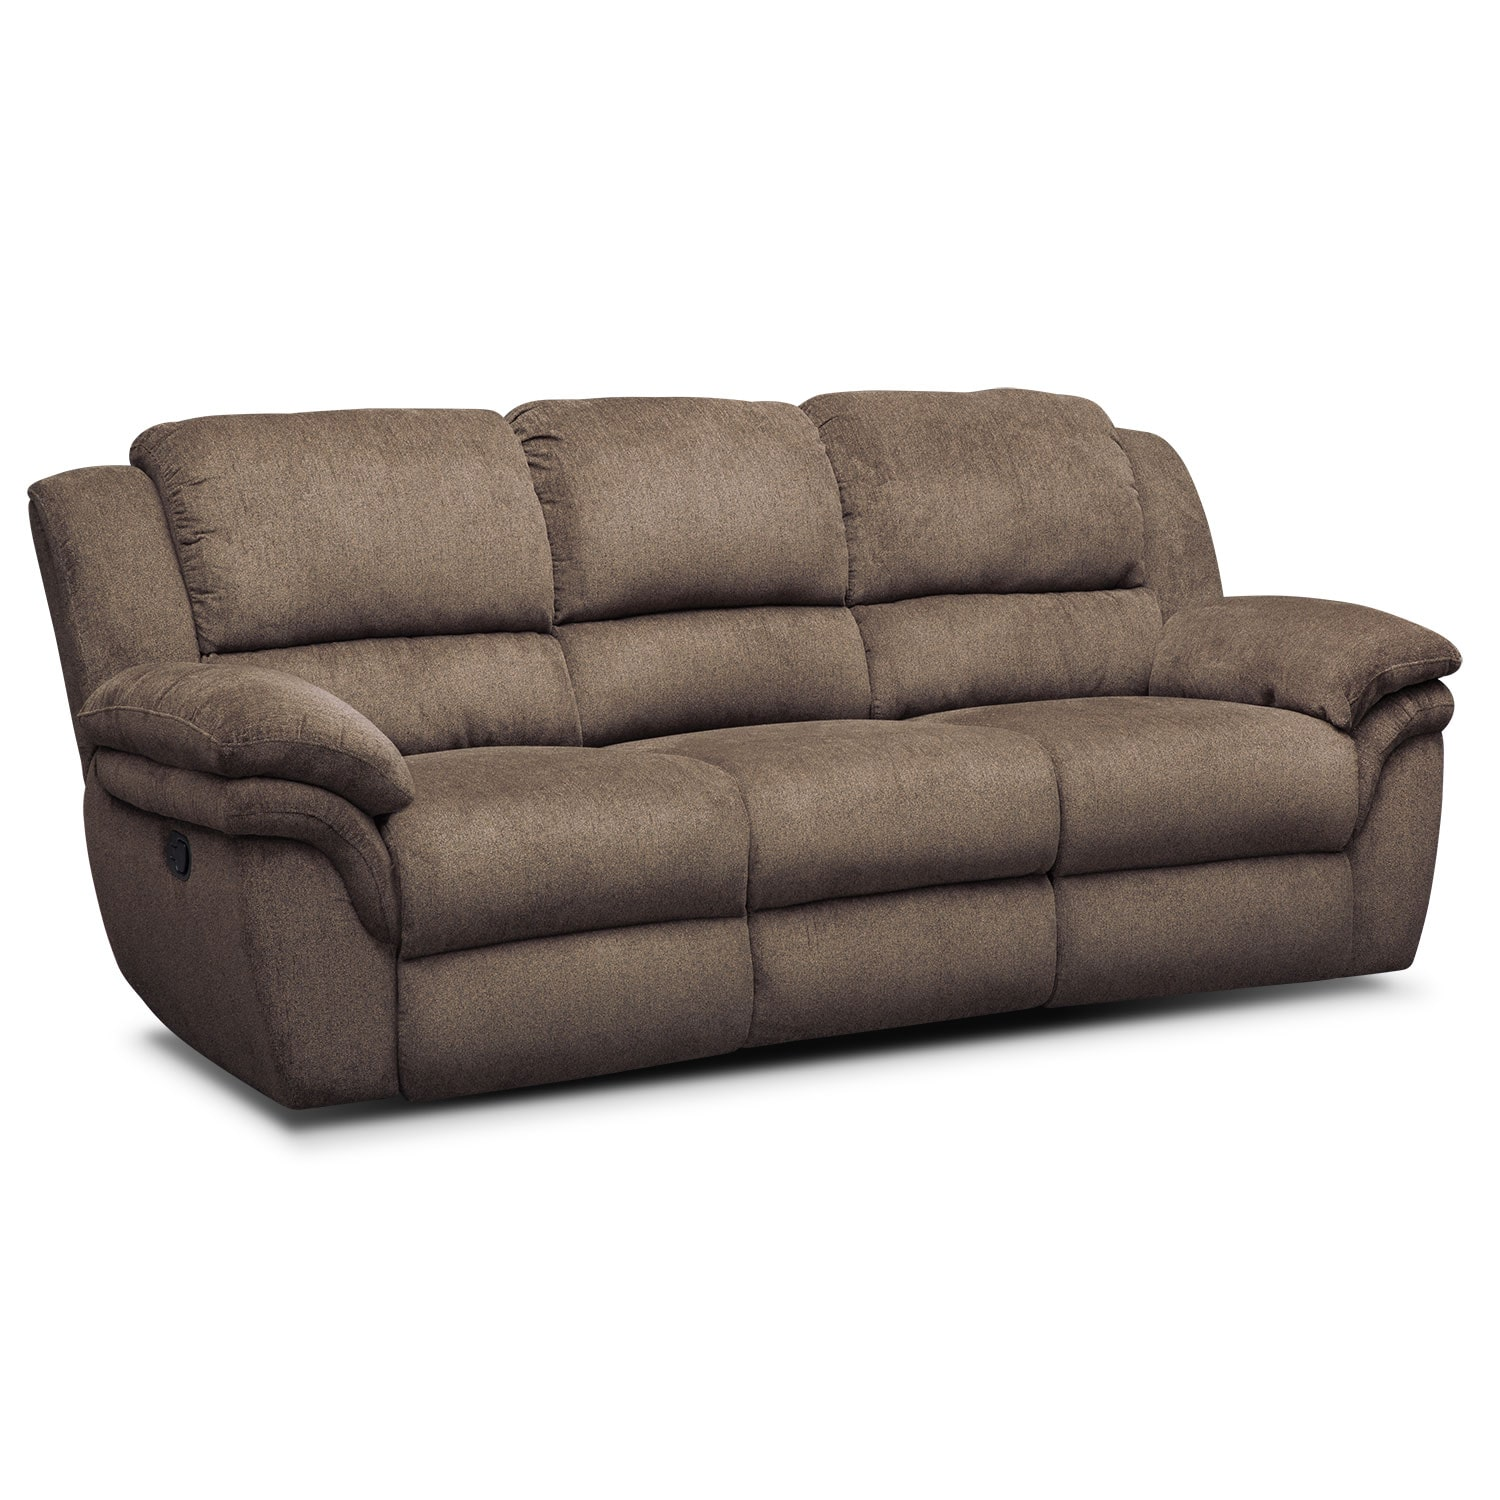 Aldo Manual Reclining Sofa And Loveseat Set - Mocha By Factory Outlet